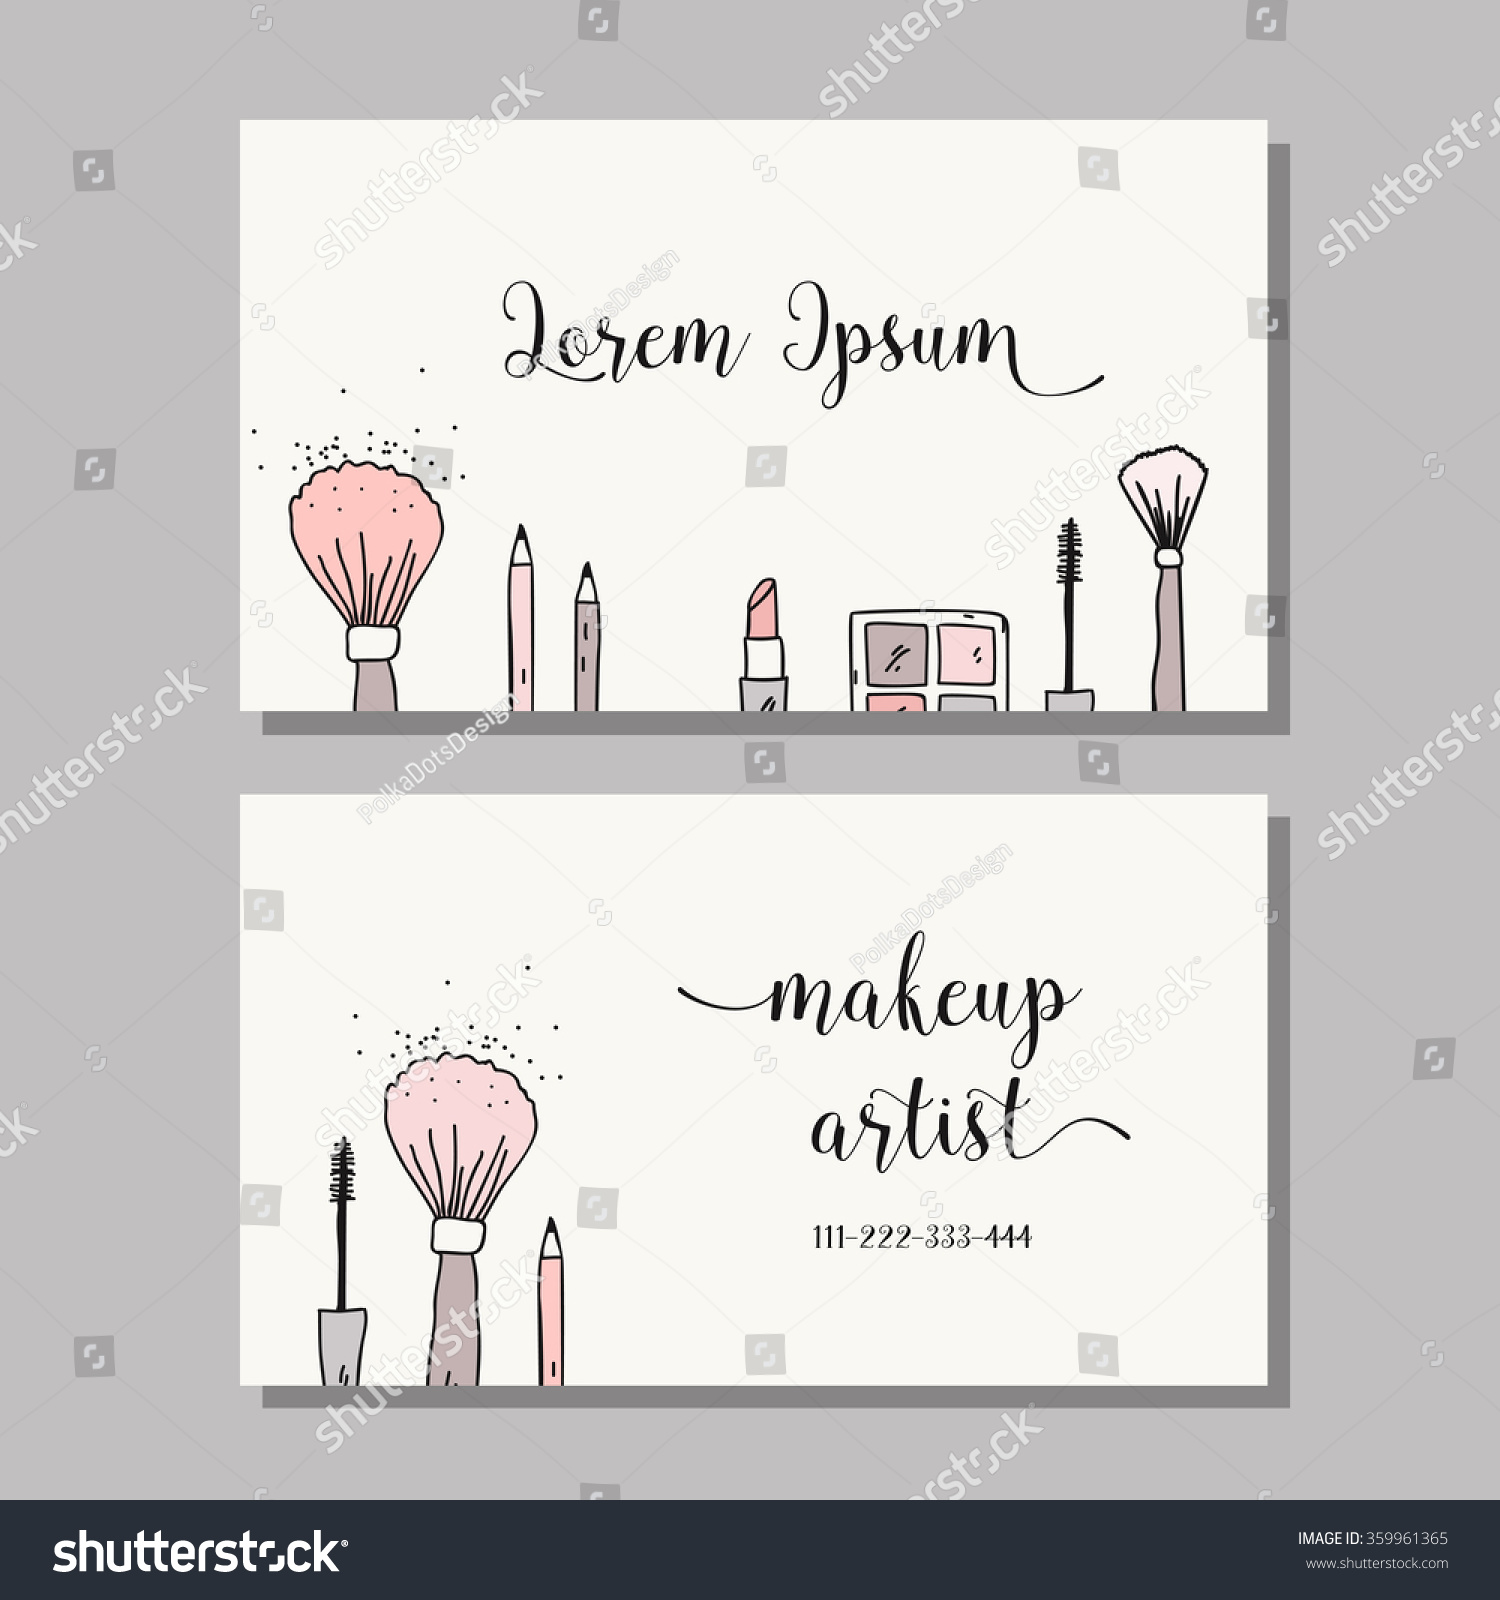 Makeup artist business card vector template stock vector royalty makeup artist business card vector template with makeup items pattern brush pencil colourmoves